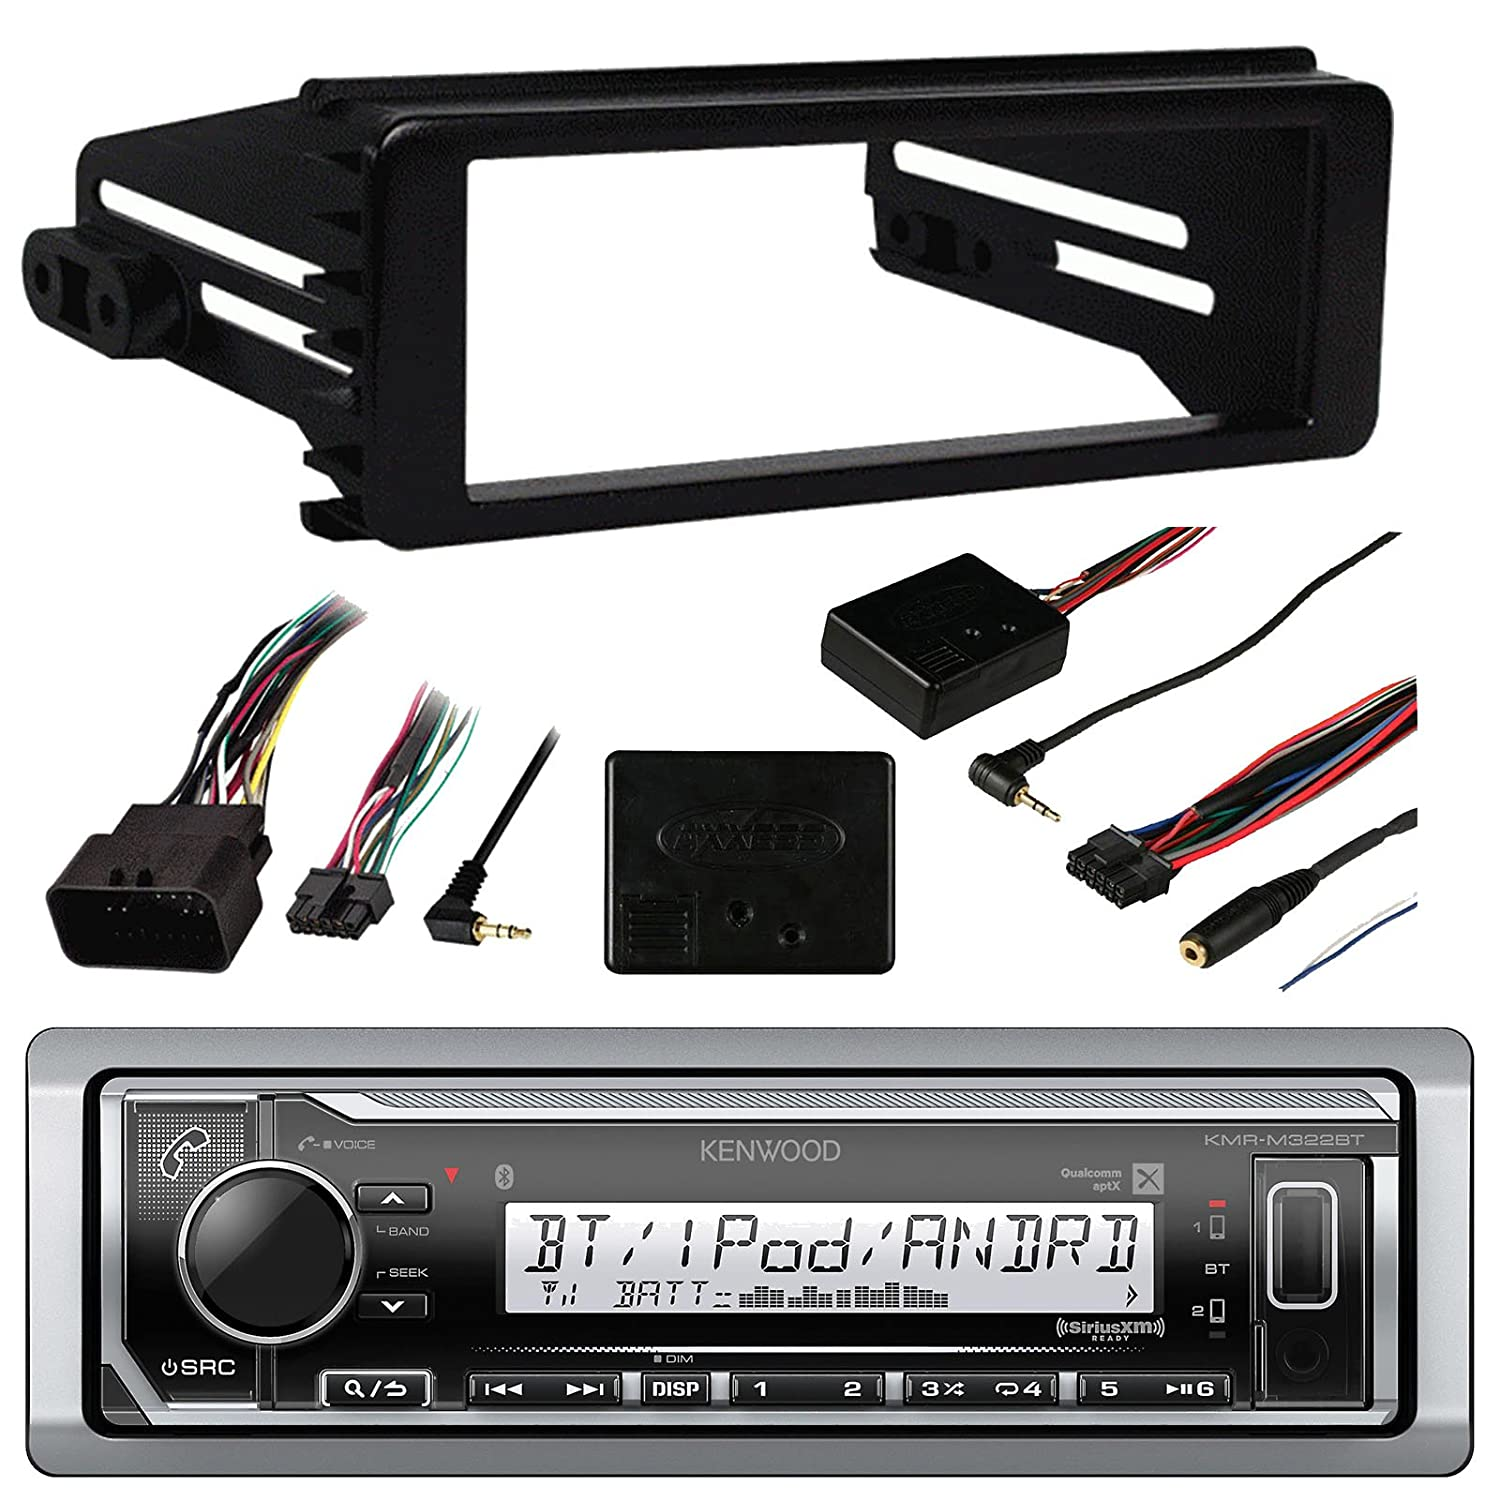 98 Up Kenwood Marine Harley Touring Stereo Radio Install Wiring Diagram Further Head Unit On Cd Changer Adapter Dash Kit Flht Flhx Flhtc Cell Phones Accessories